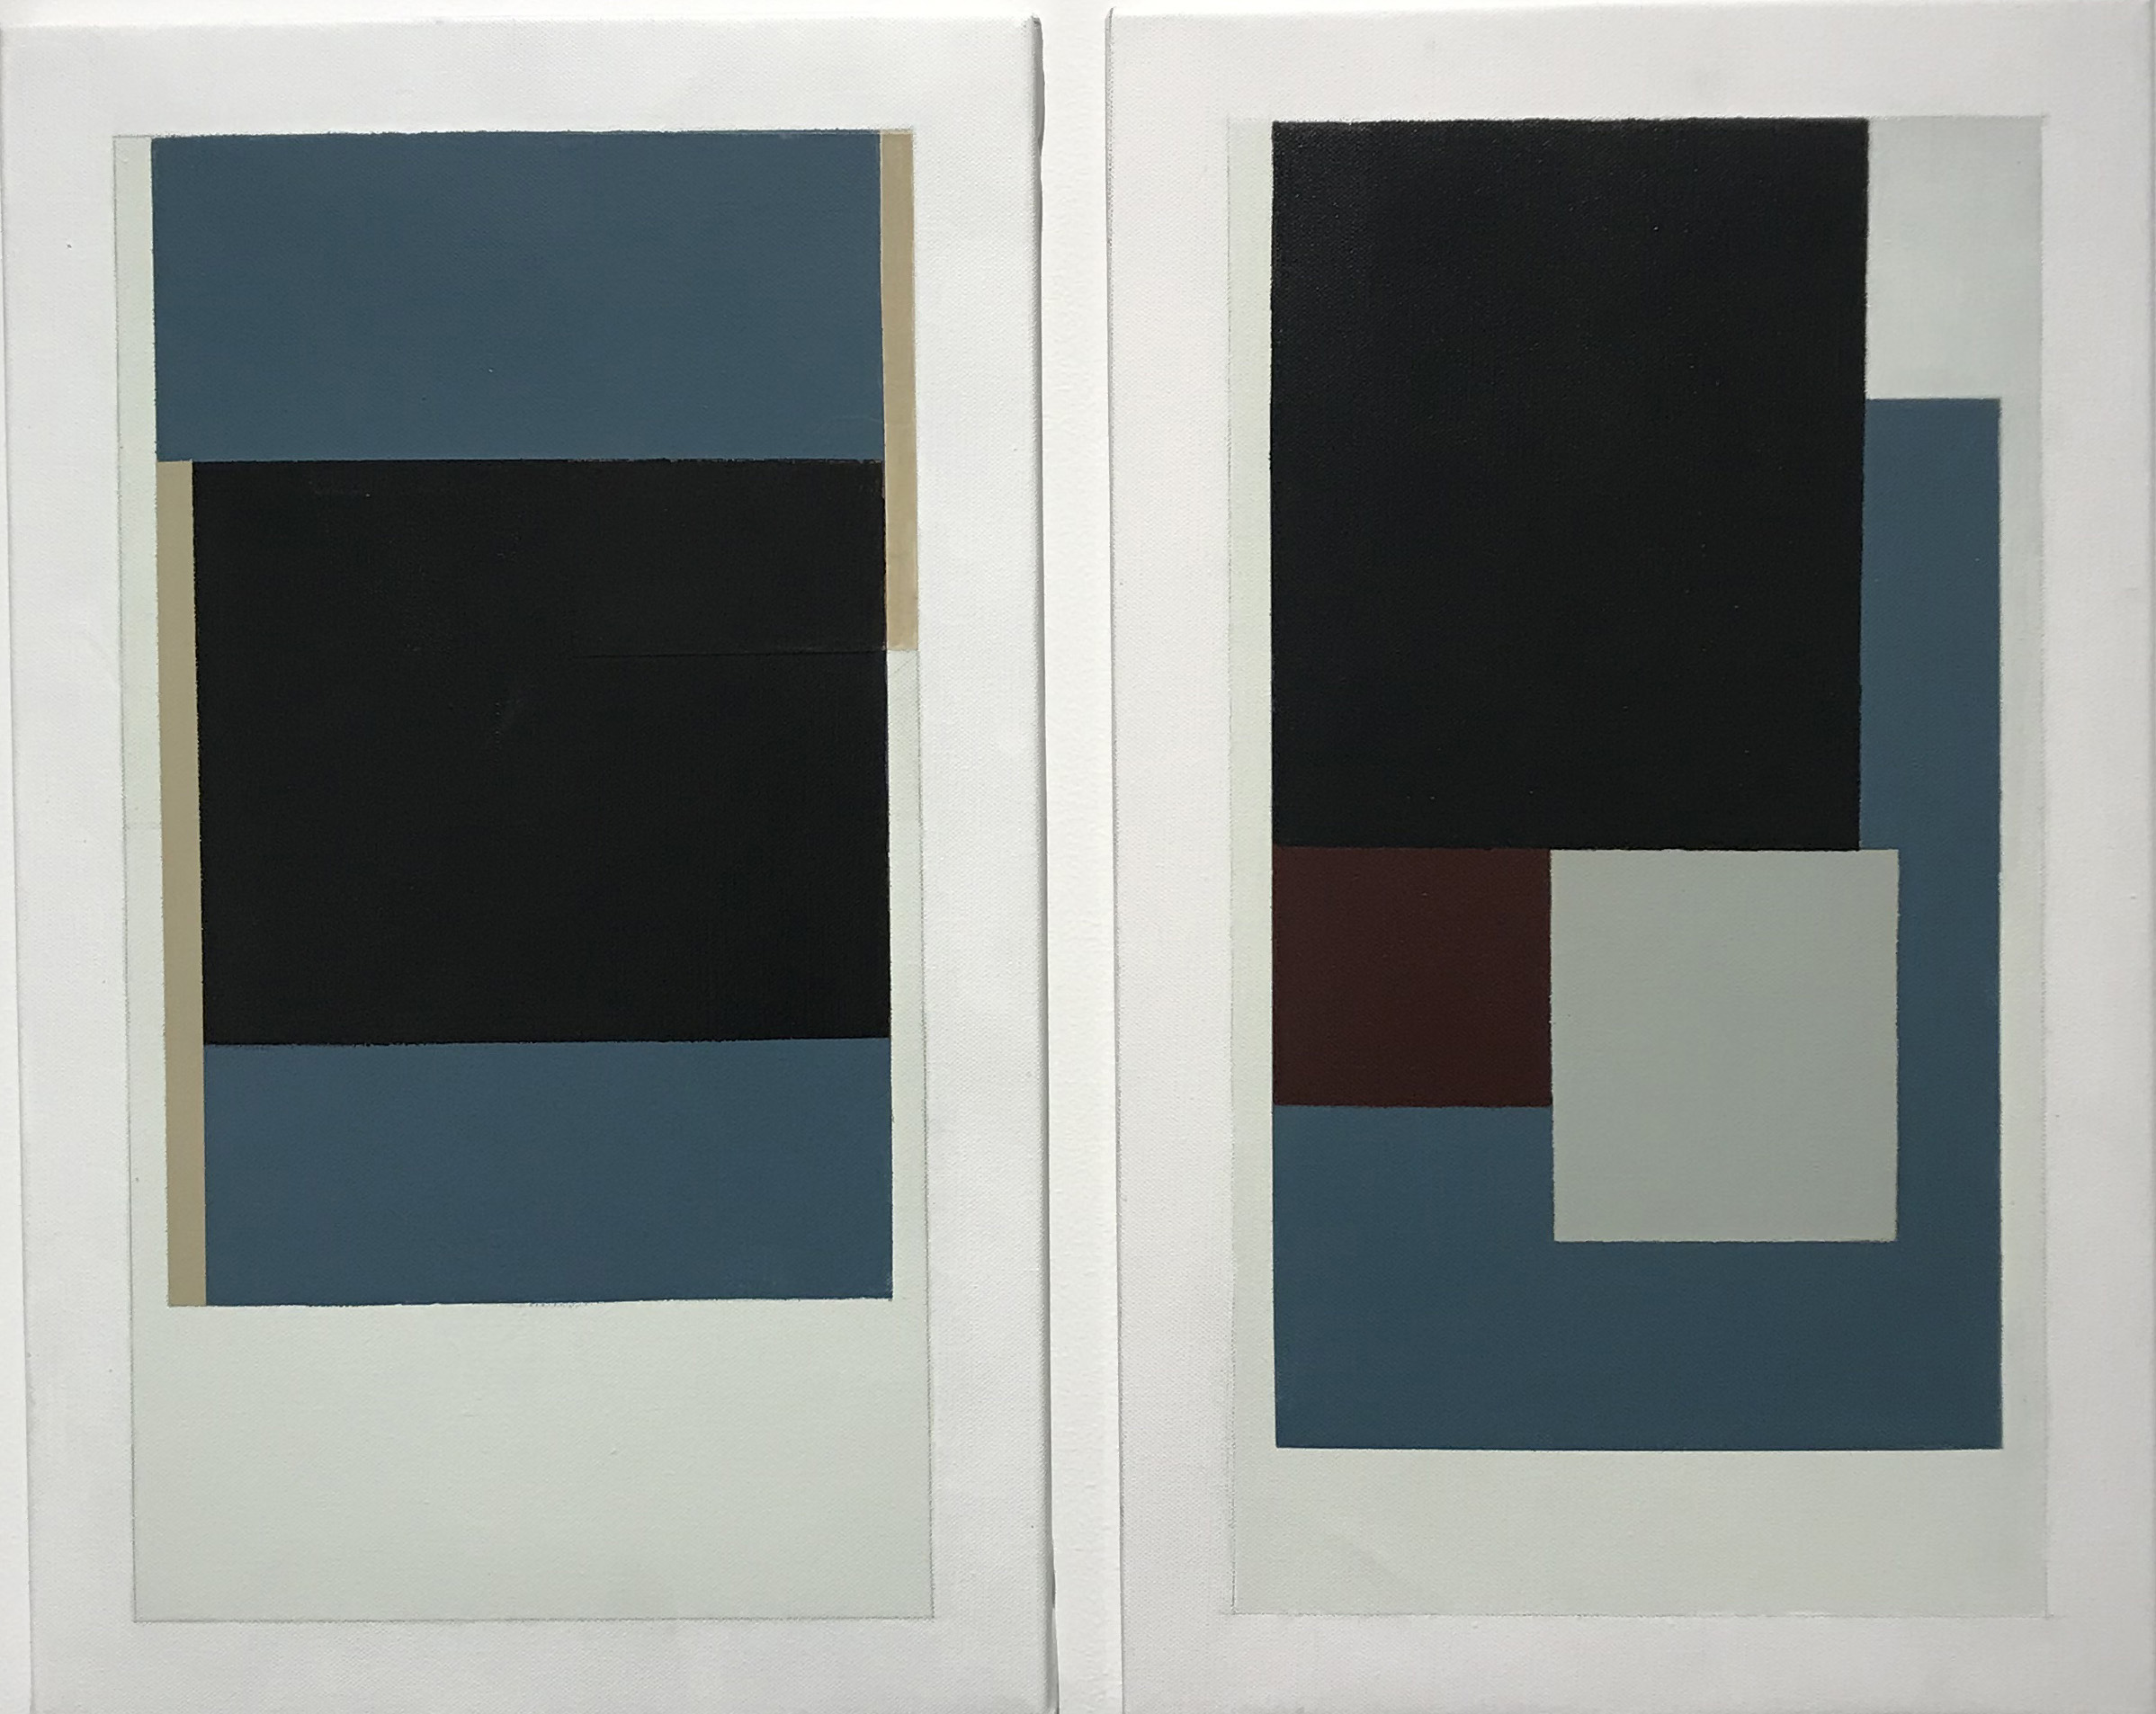 untitled  (LK18.013), 2016 acrylic on canvas 19 3/4 x 11 3/4 inches, each panel